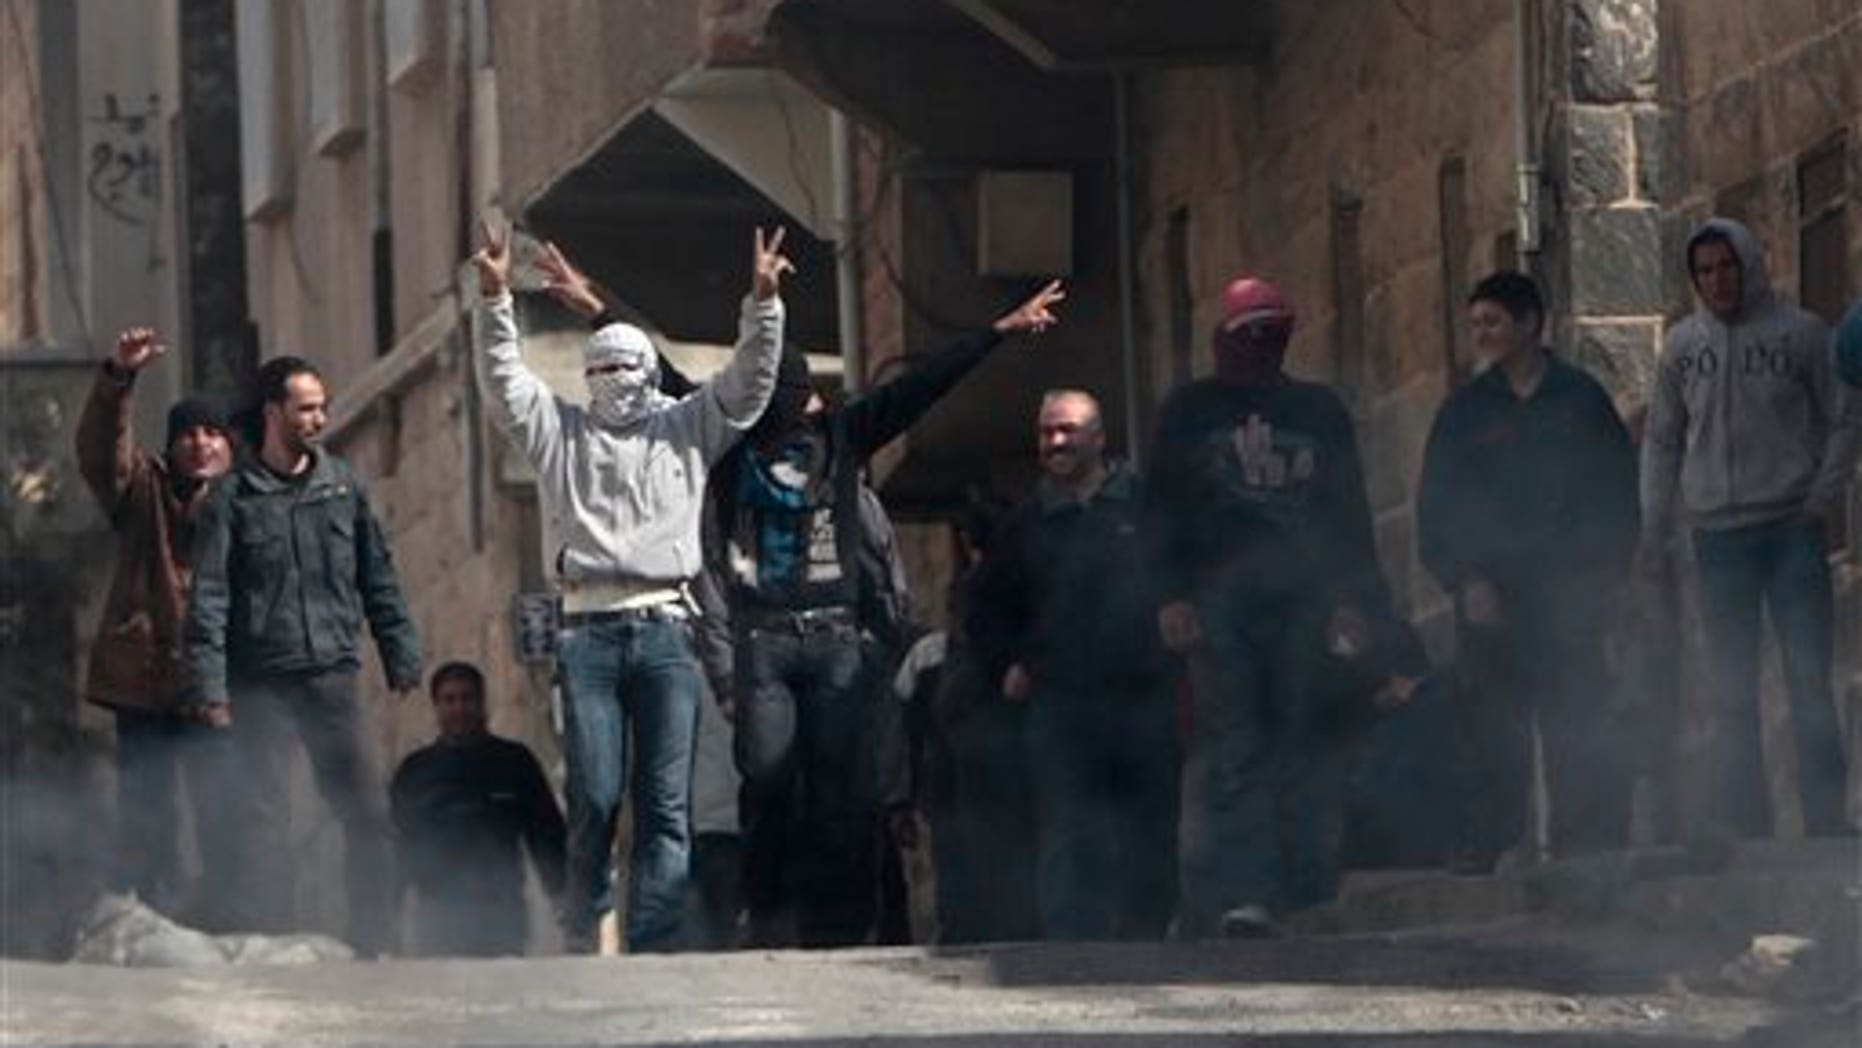 March 23: Anti-Syrian government protesters flash V sign as they protest in the southern city of Daraa, Syria. Syrian security forces shot live ammunition and tear gas near a mosque where protesters have been camped out in southern Syria, killing six people including a paramedic, activists said. The early morning attack near the al-Omari mosque in the southern city of Daraa marks the deadliest single day since anti-government protests inspired by uprisings across the Arab world reached this country last week. (AP)